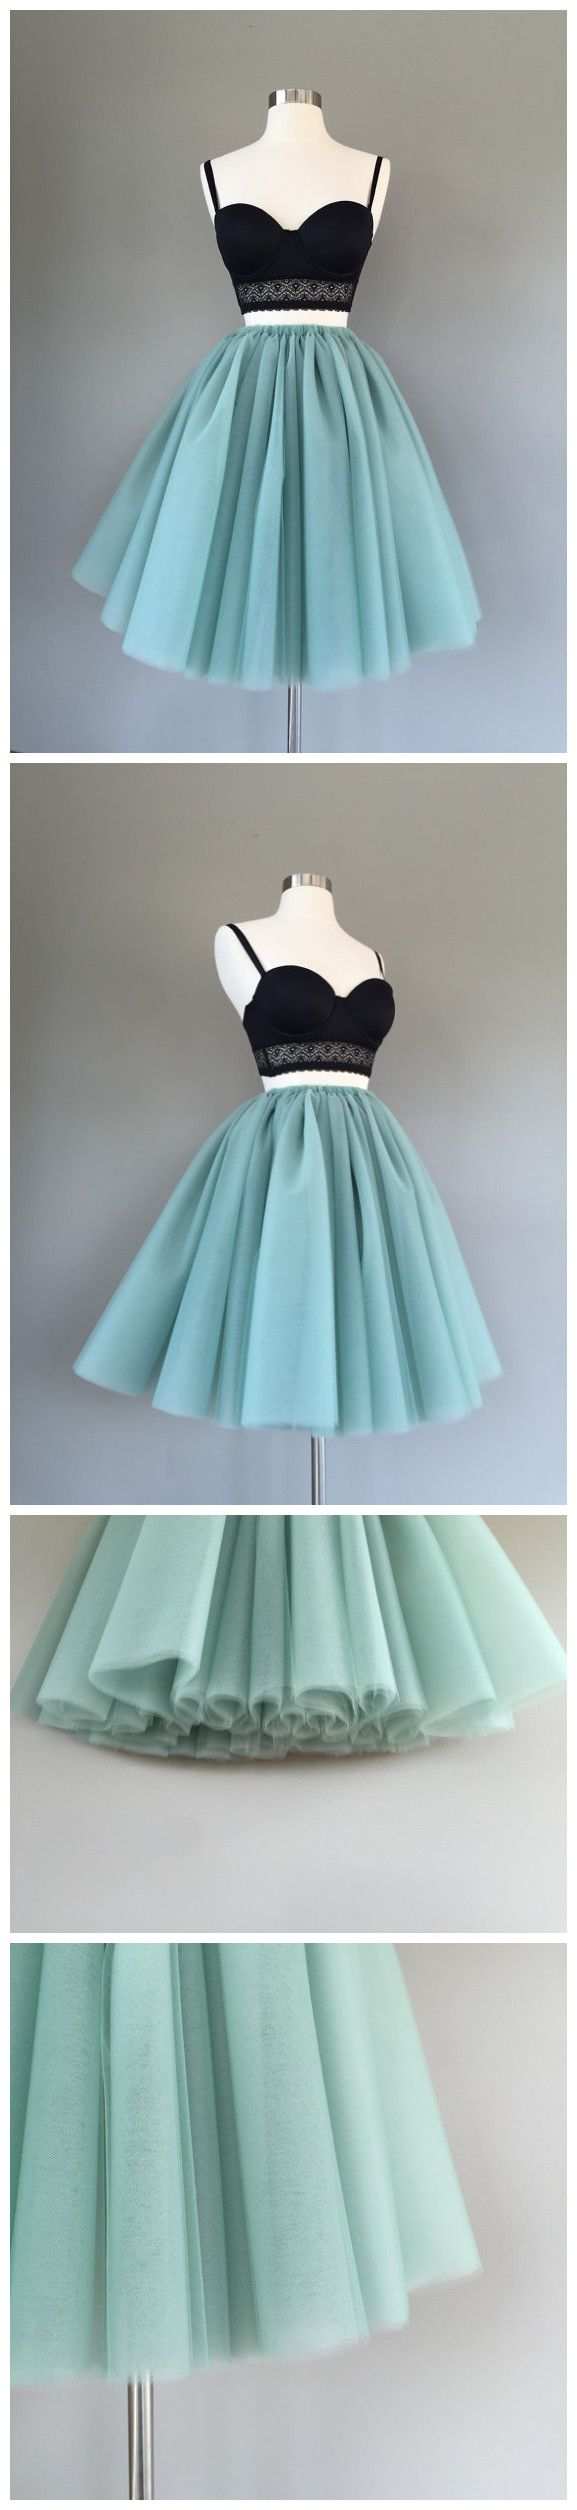 Two Pieces A-line Spaghetti Straps Short Prom #Dress Green Homecoming Dresses AM002